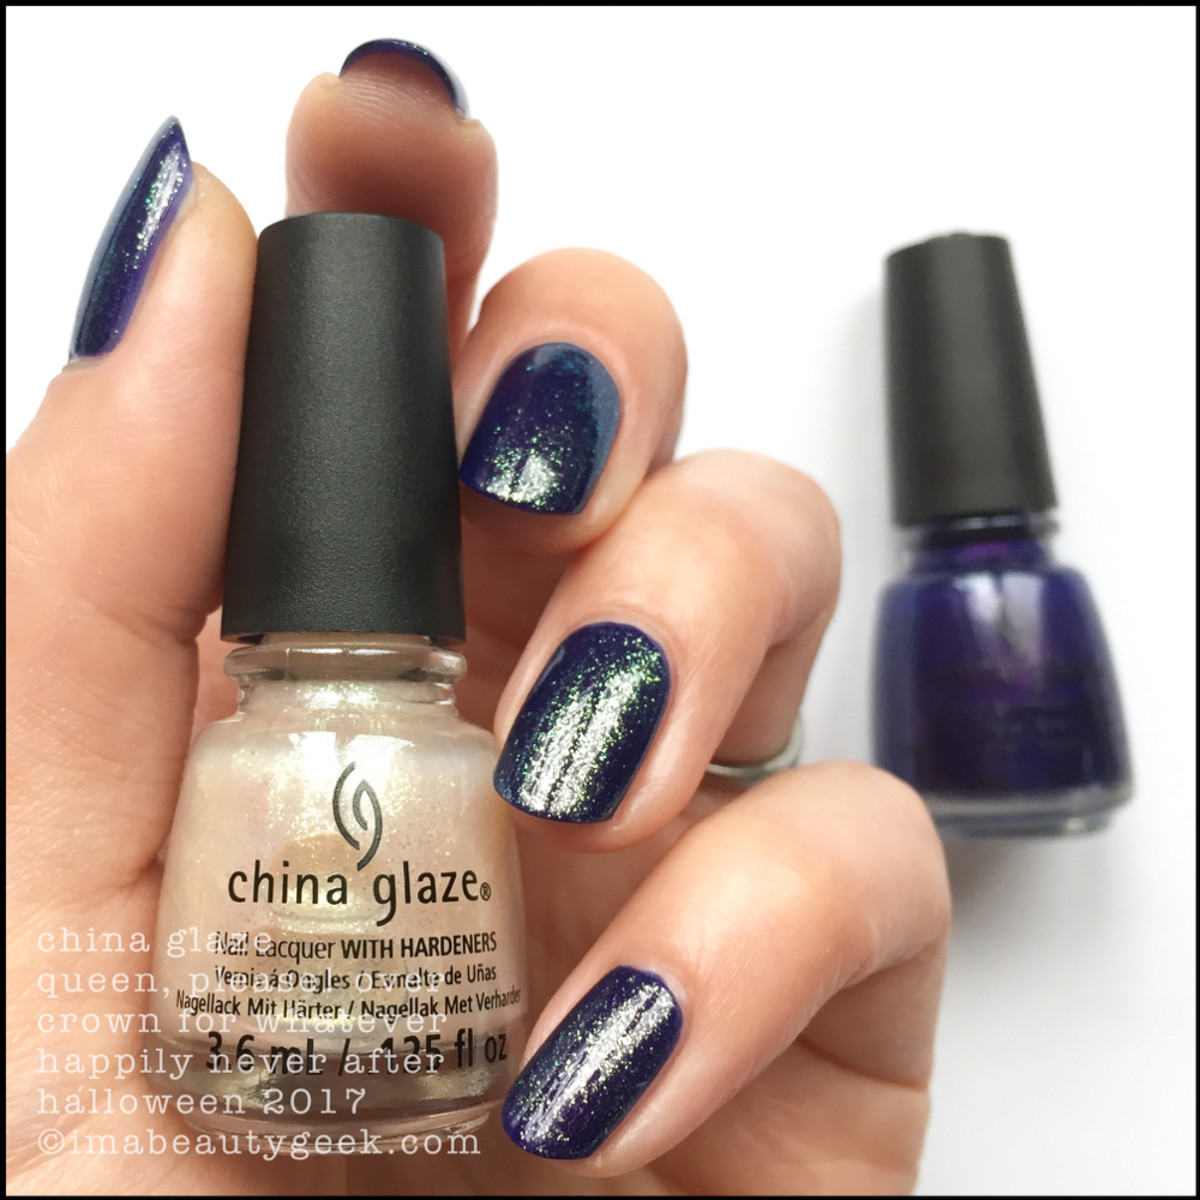 China Glaze Queen, Please! over Crown for Whatever _ China Glaze Happily Never After Collection Halloween 2017